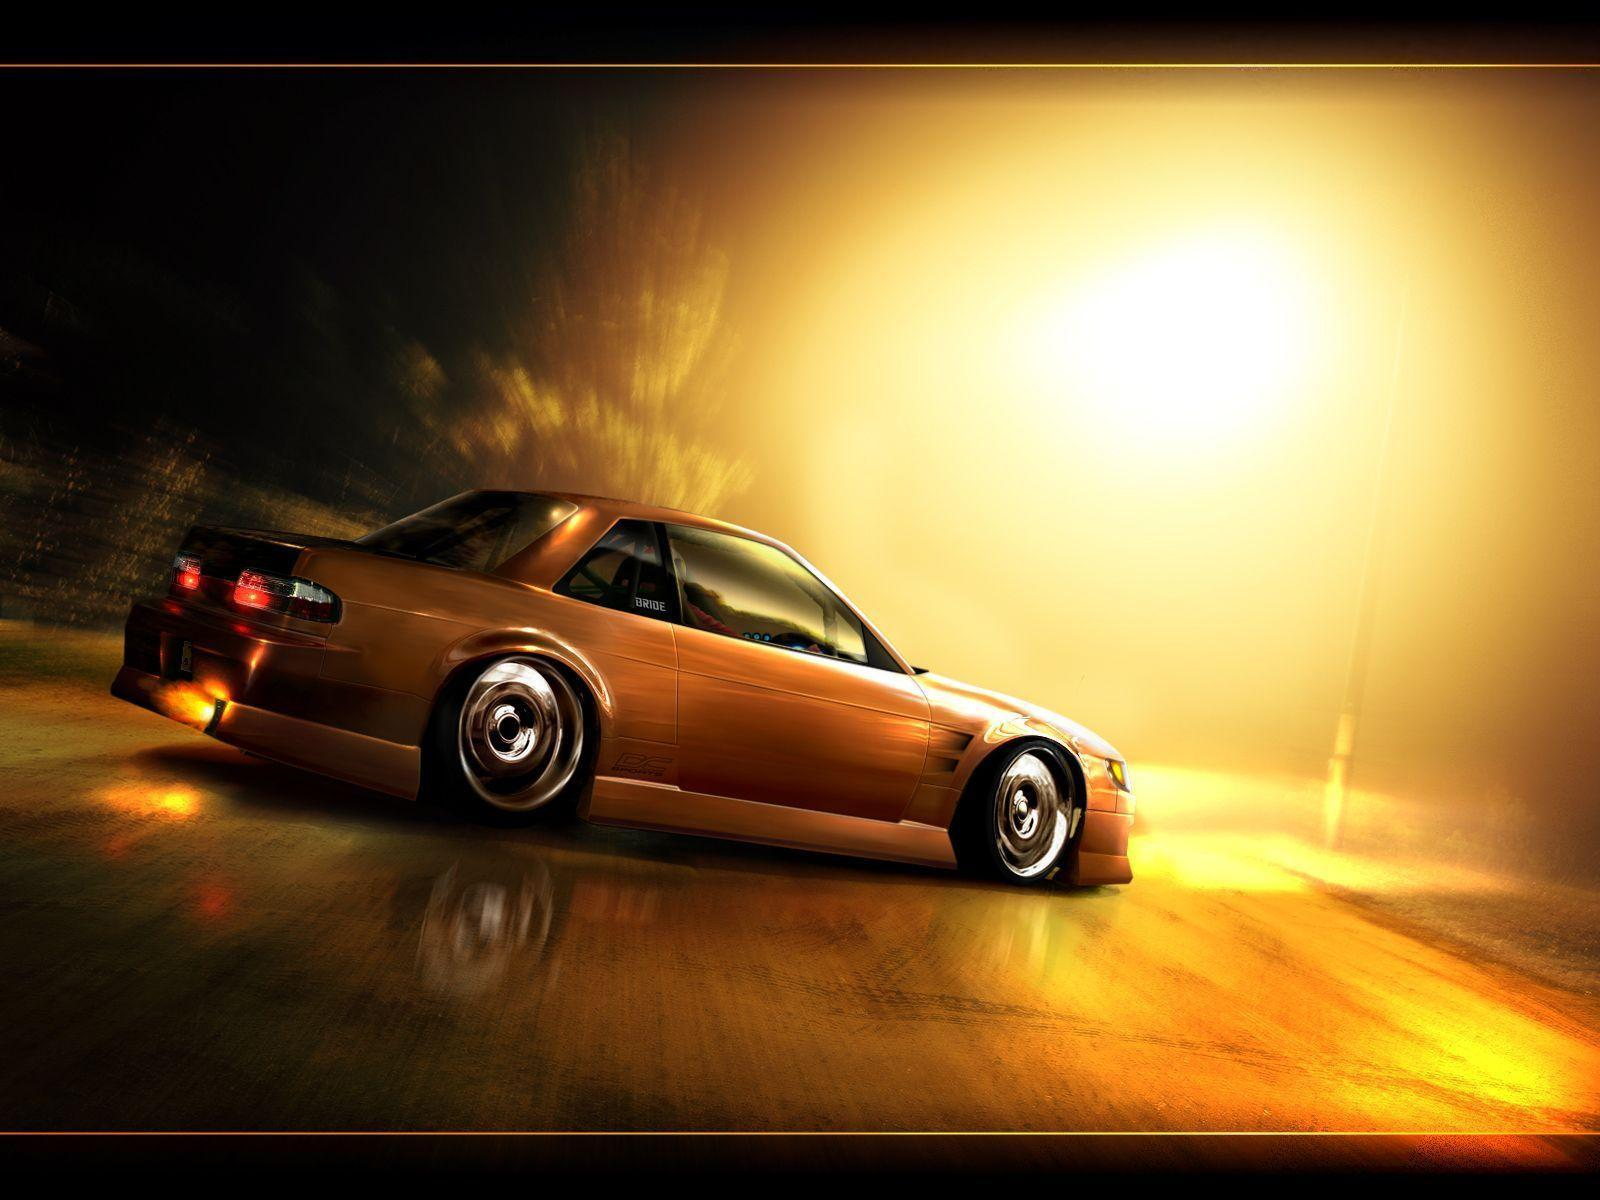 Drift Car Wallpapers - Wallpaper Cave